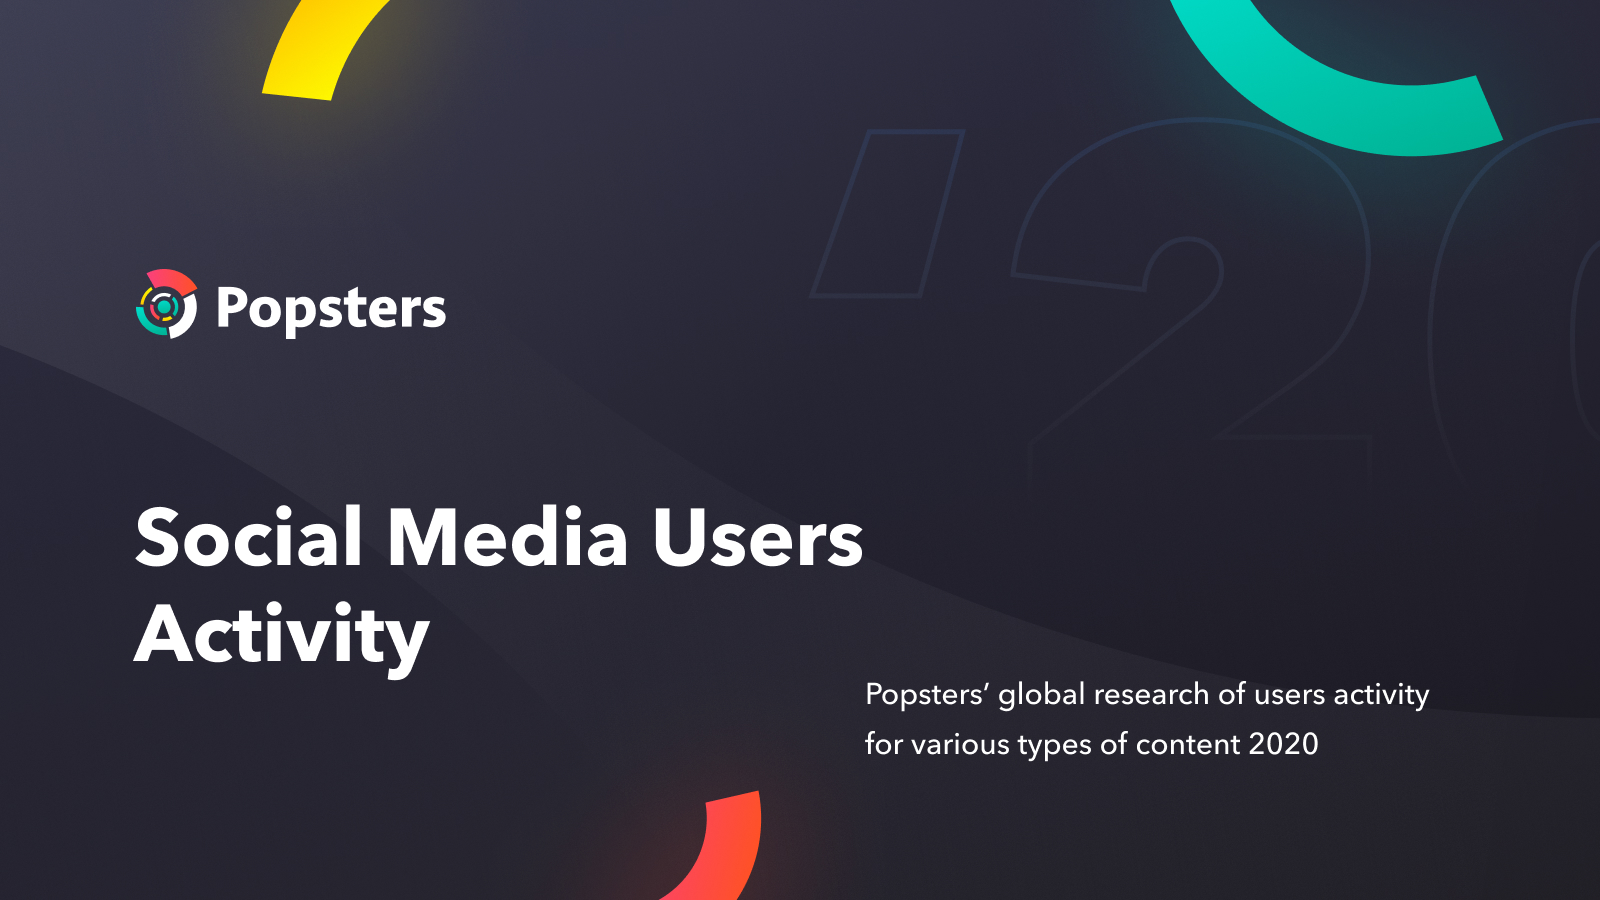 Social media users activity global report for 2020-2021